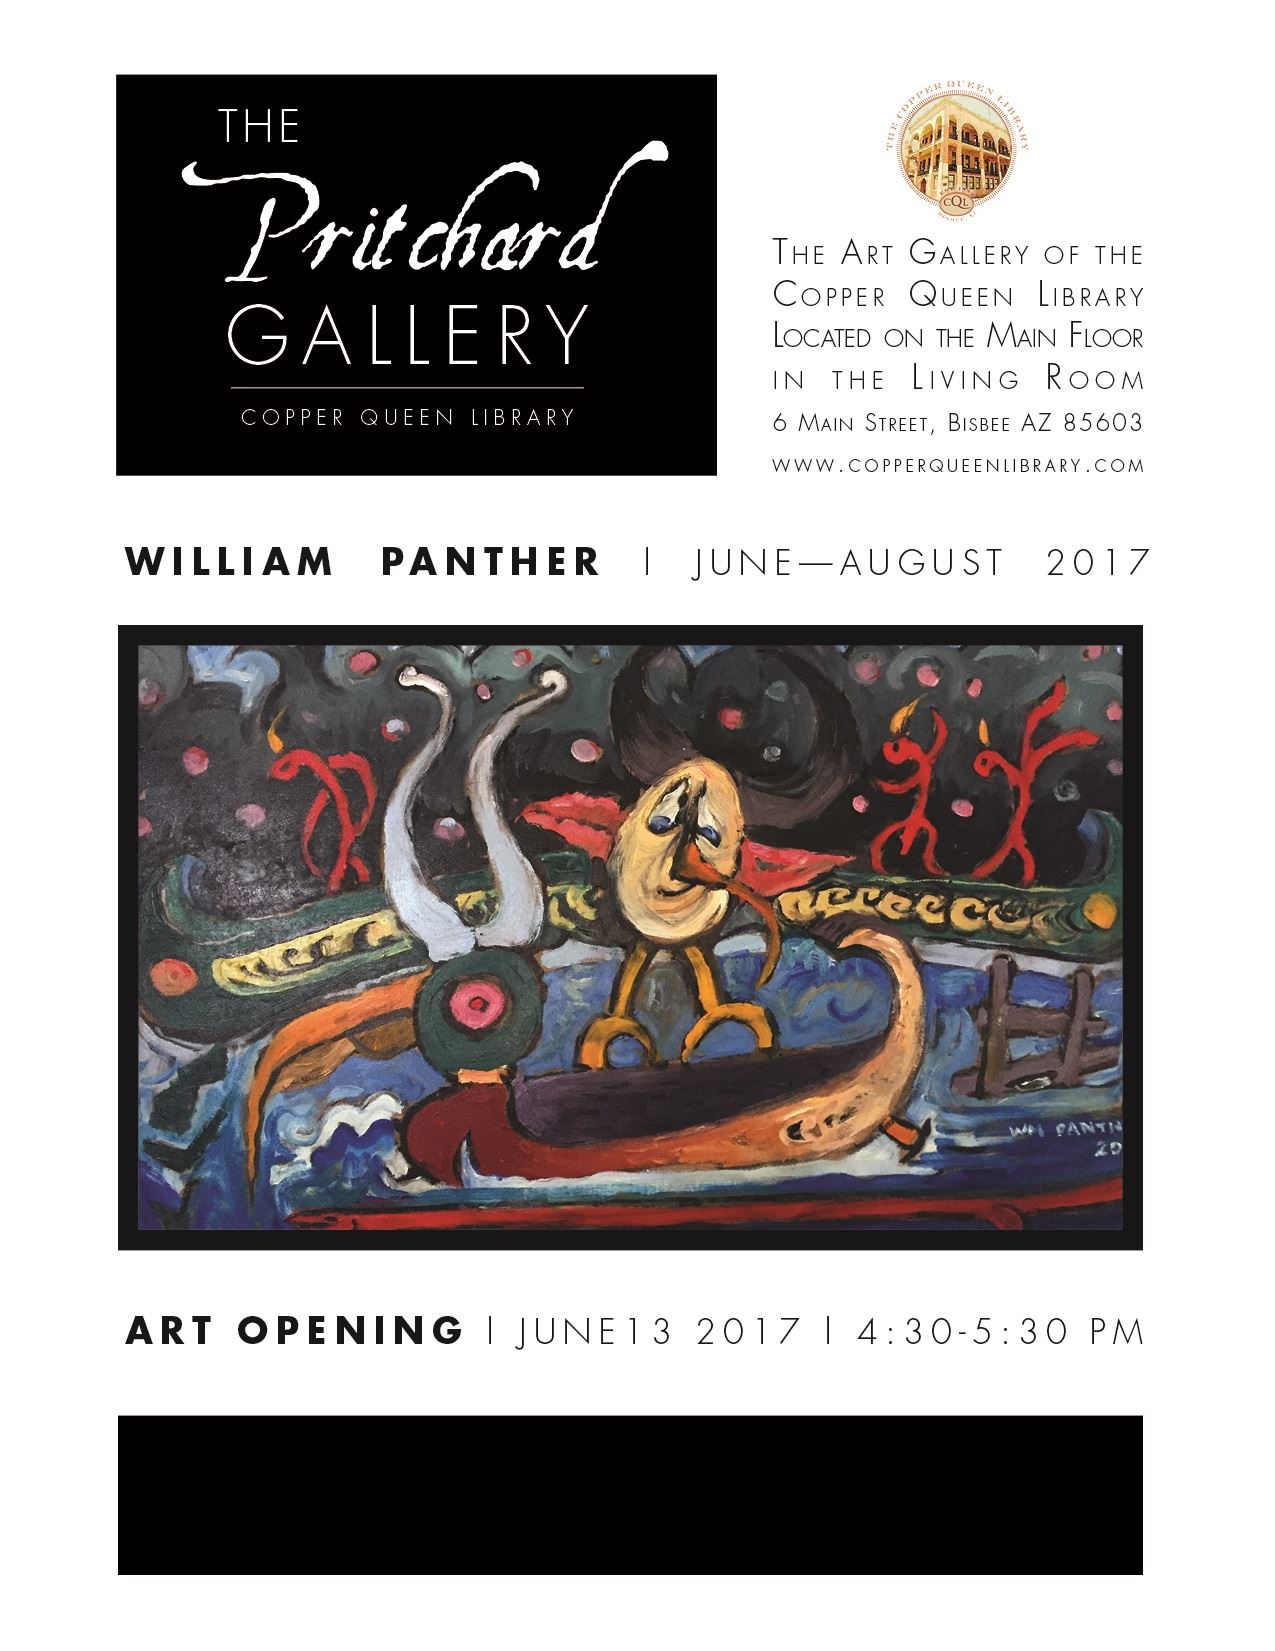 PRITCHARD GALLERY BILL PANTHER